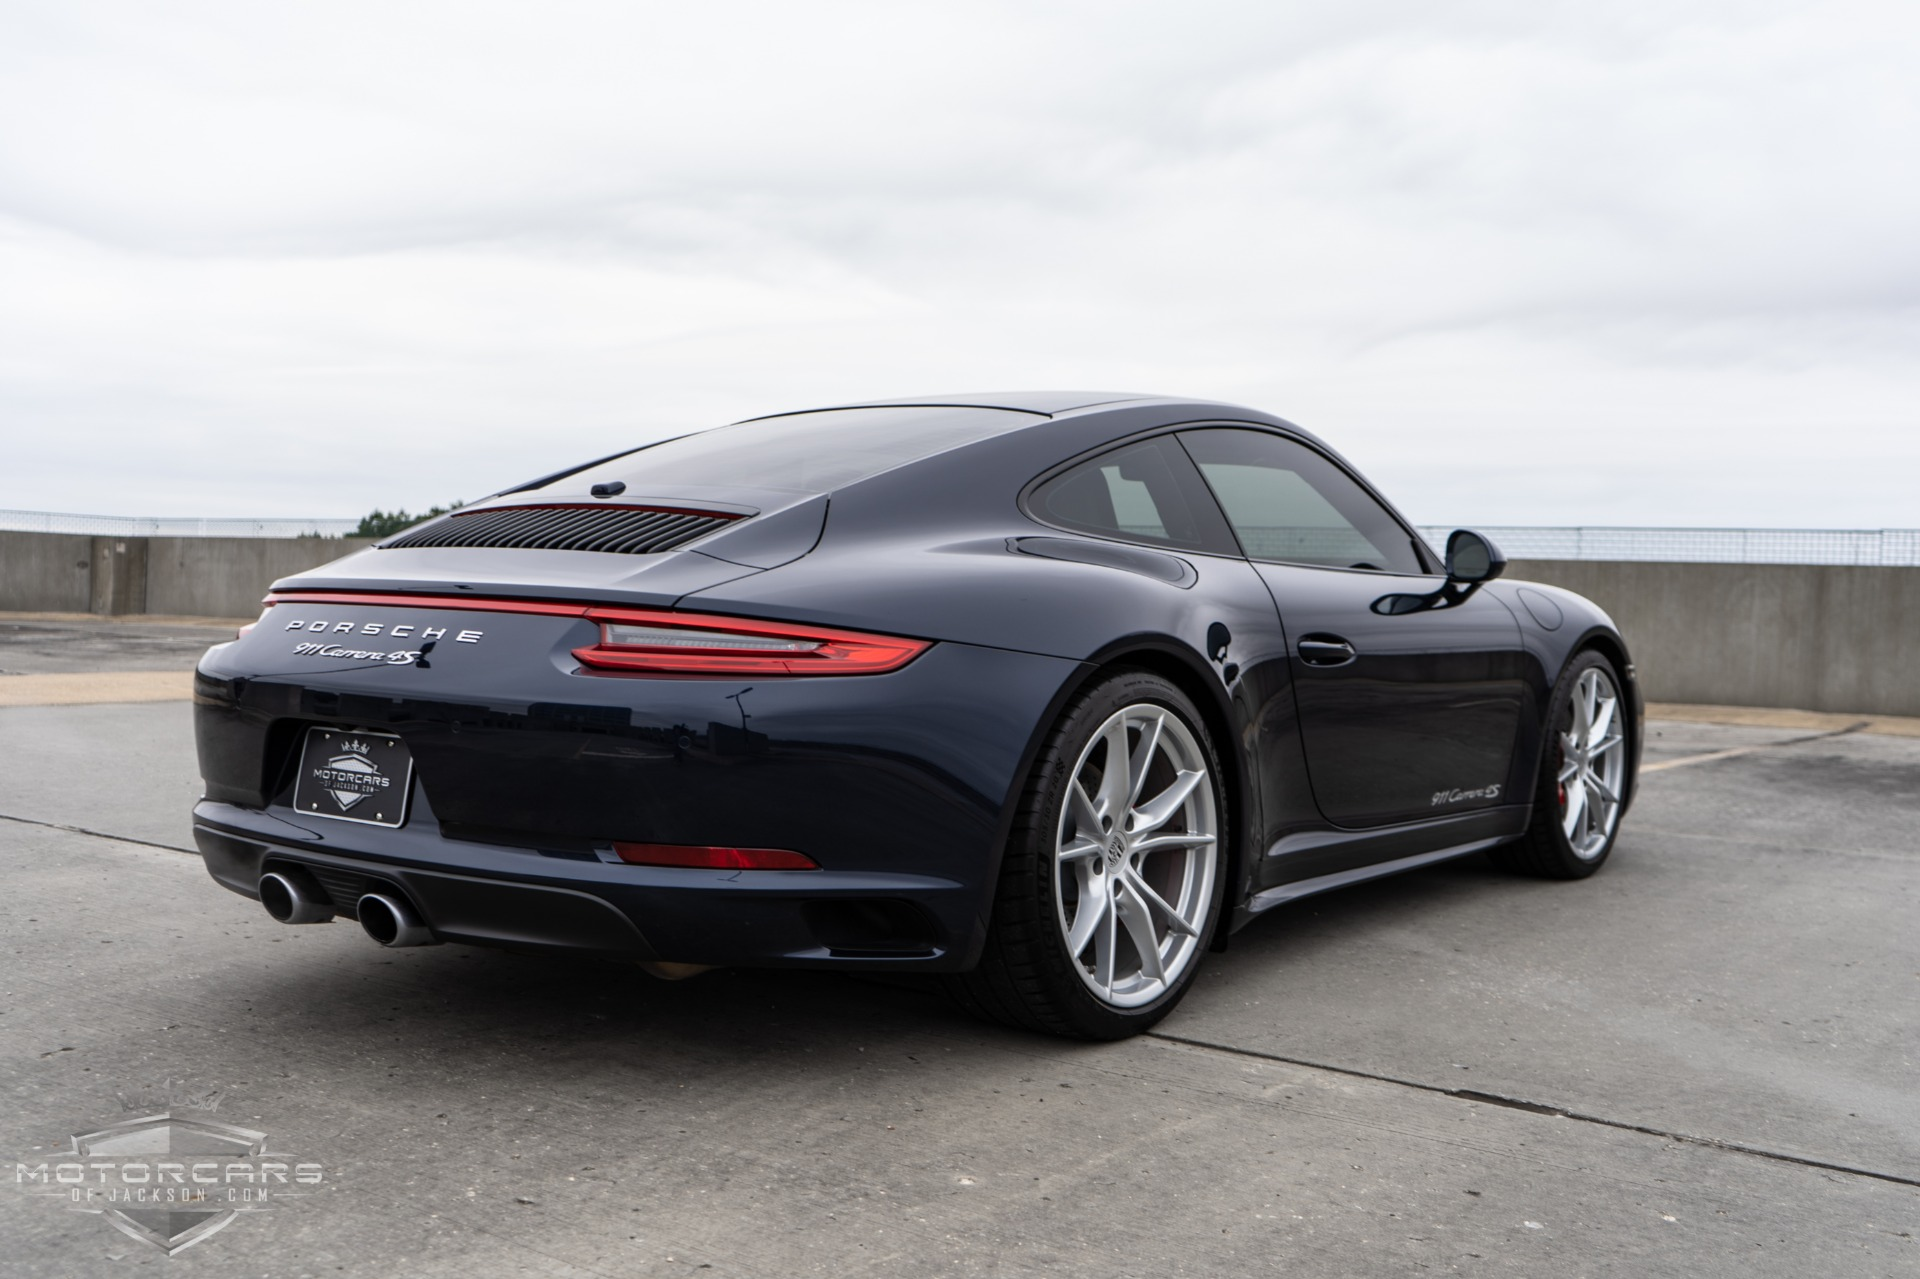 Used-2018-Porsche-911-Carrera-4S-Jackson-MS